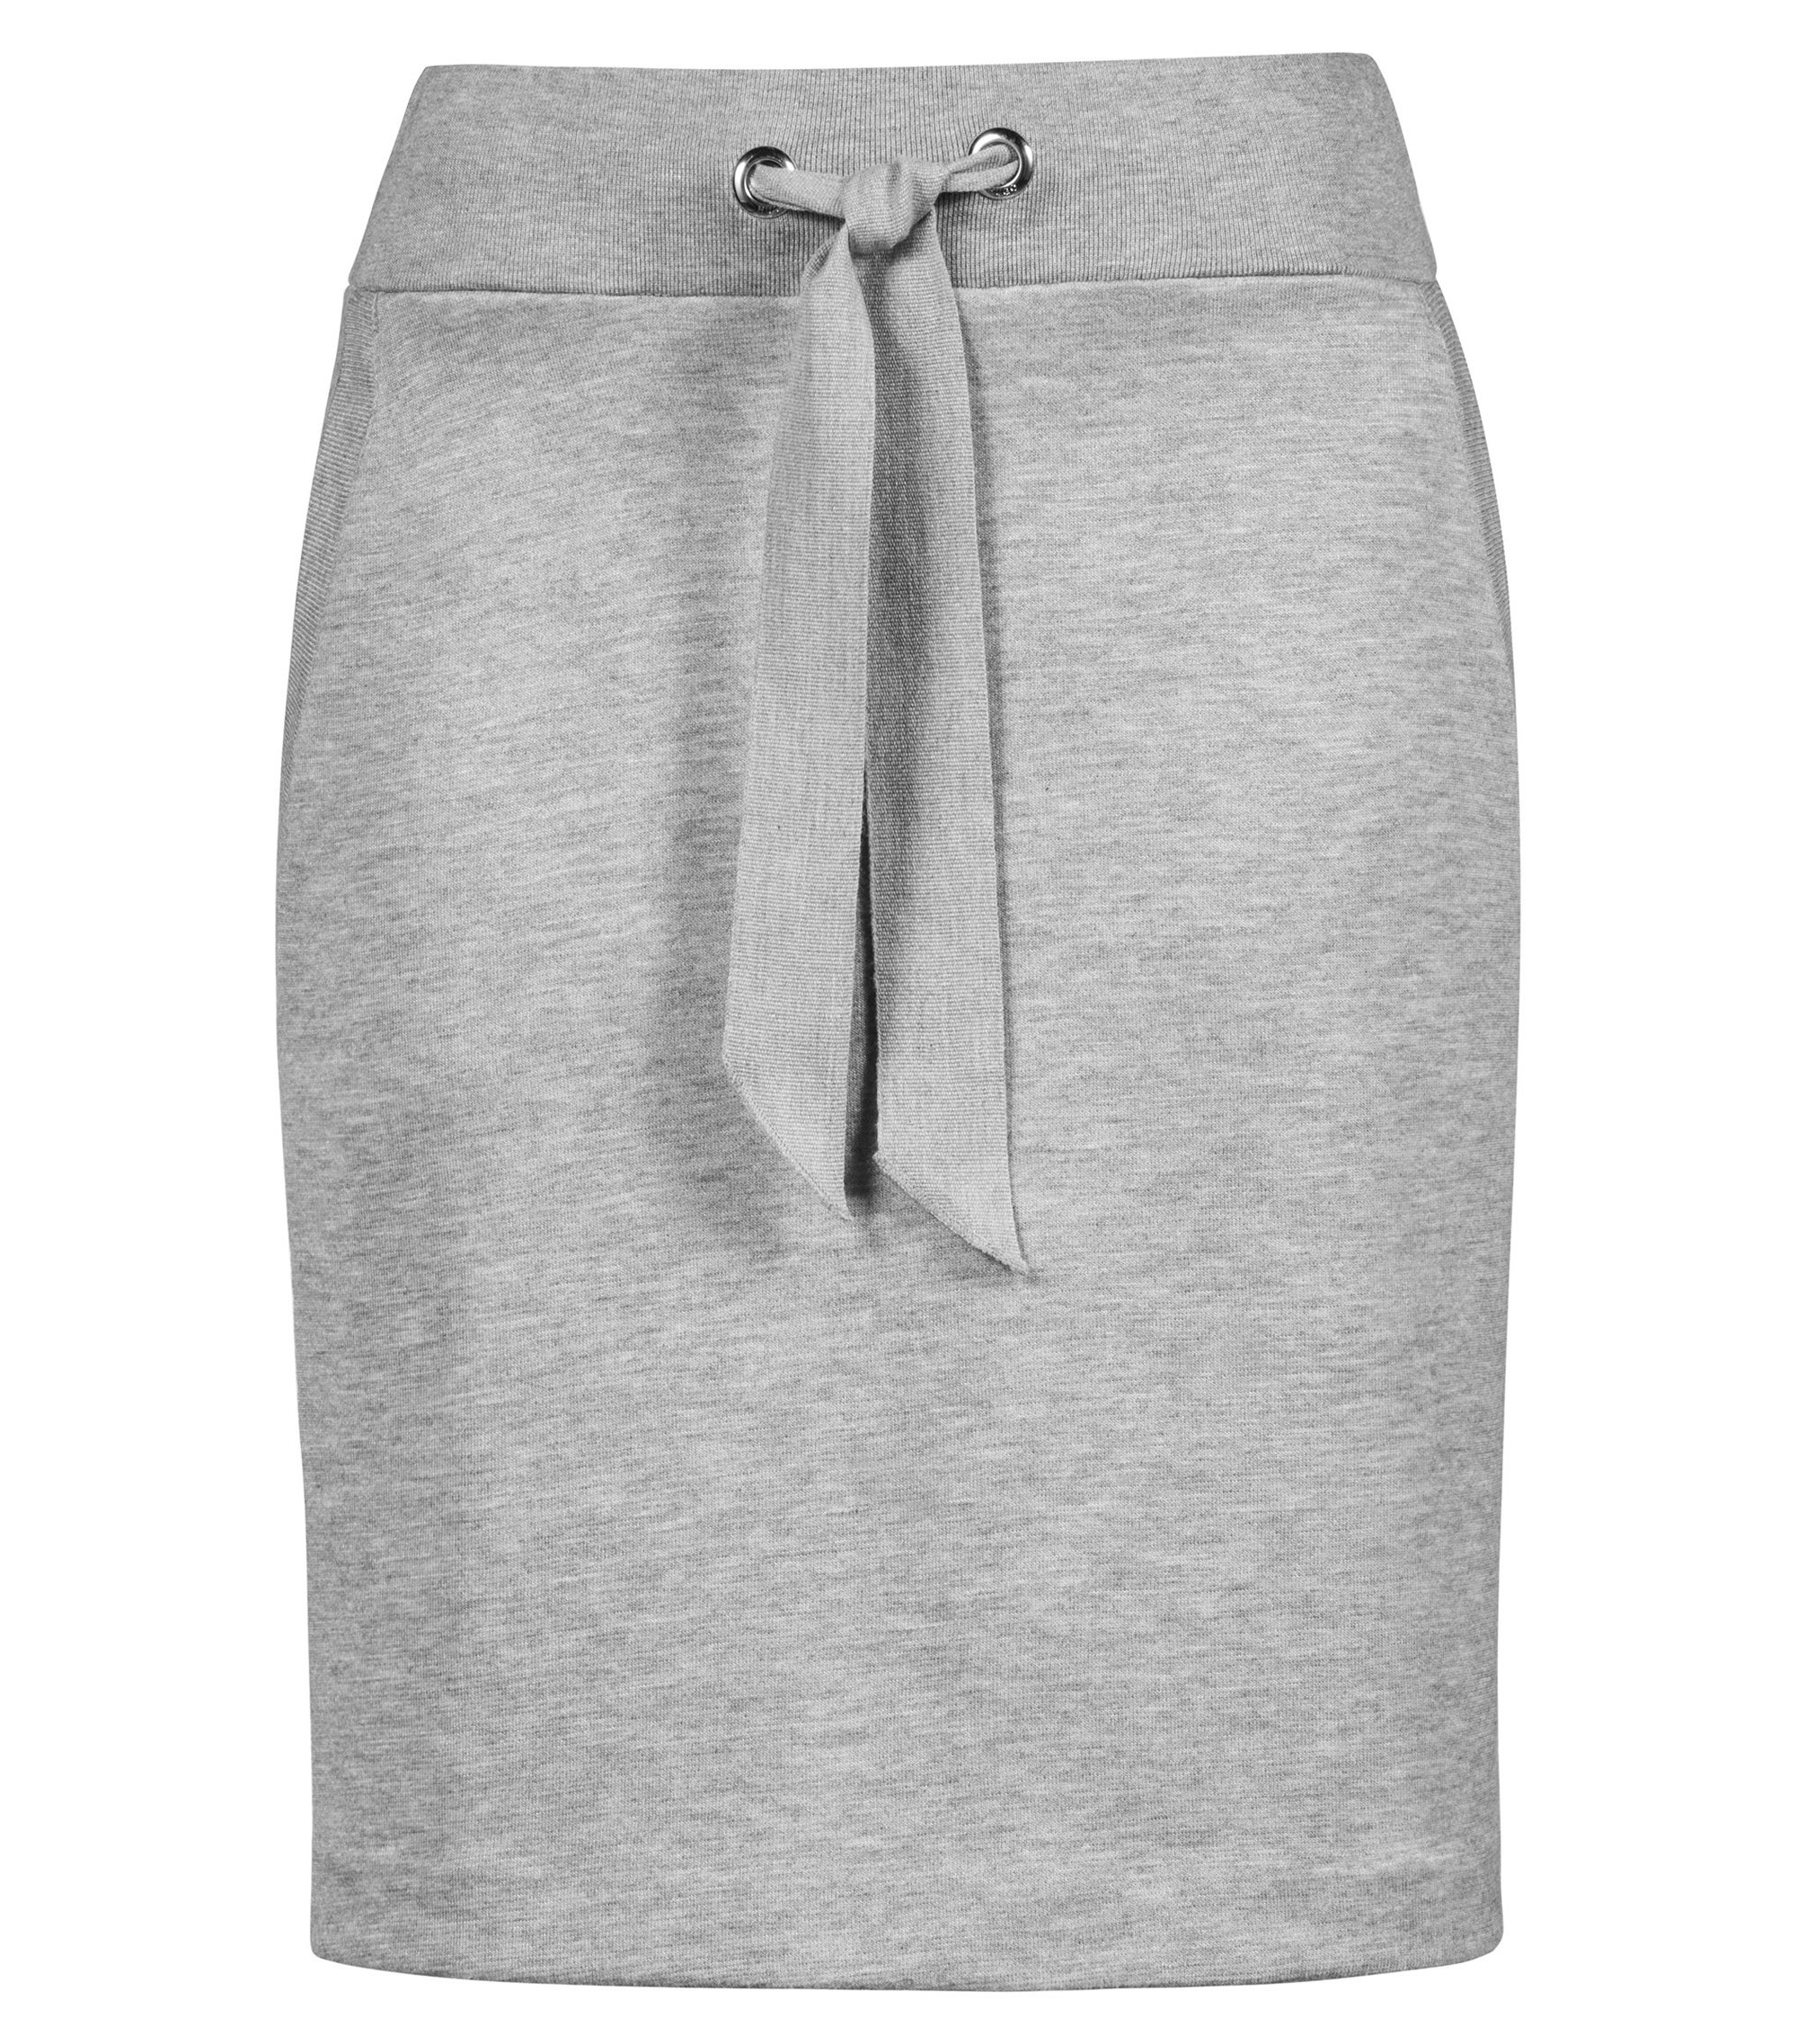 Jersey miniskirt with tie-detail waistband and metallic eyelets, Grey